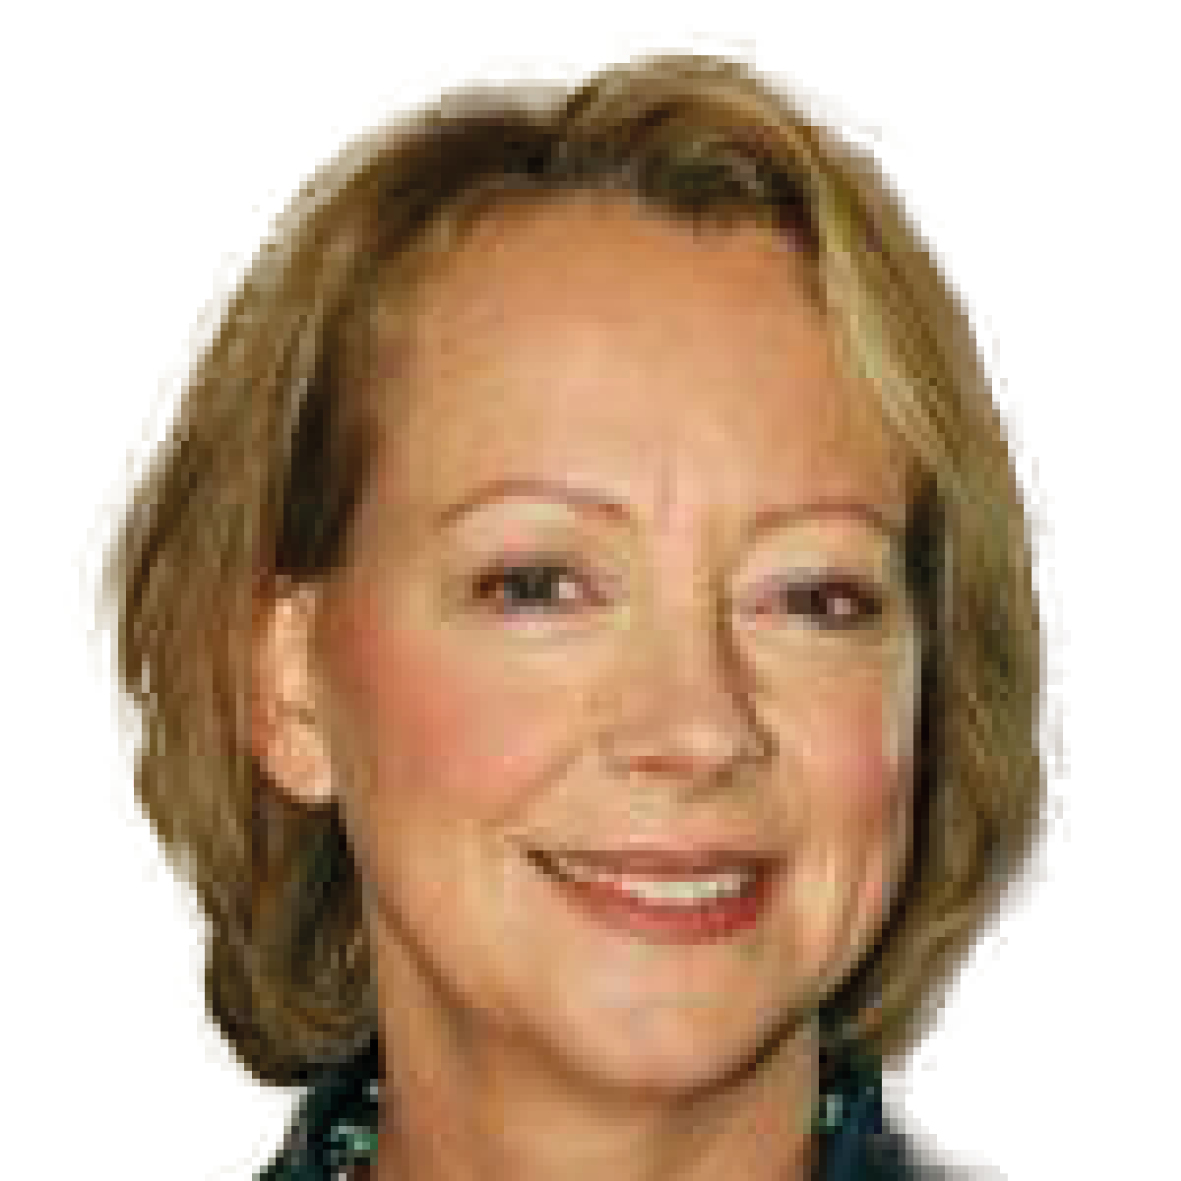 Lynda Gratton, Professor of Management Practice, Executive Education Faculty Director, London Business School